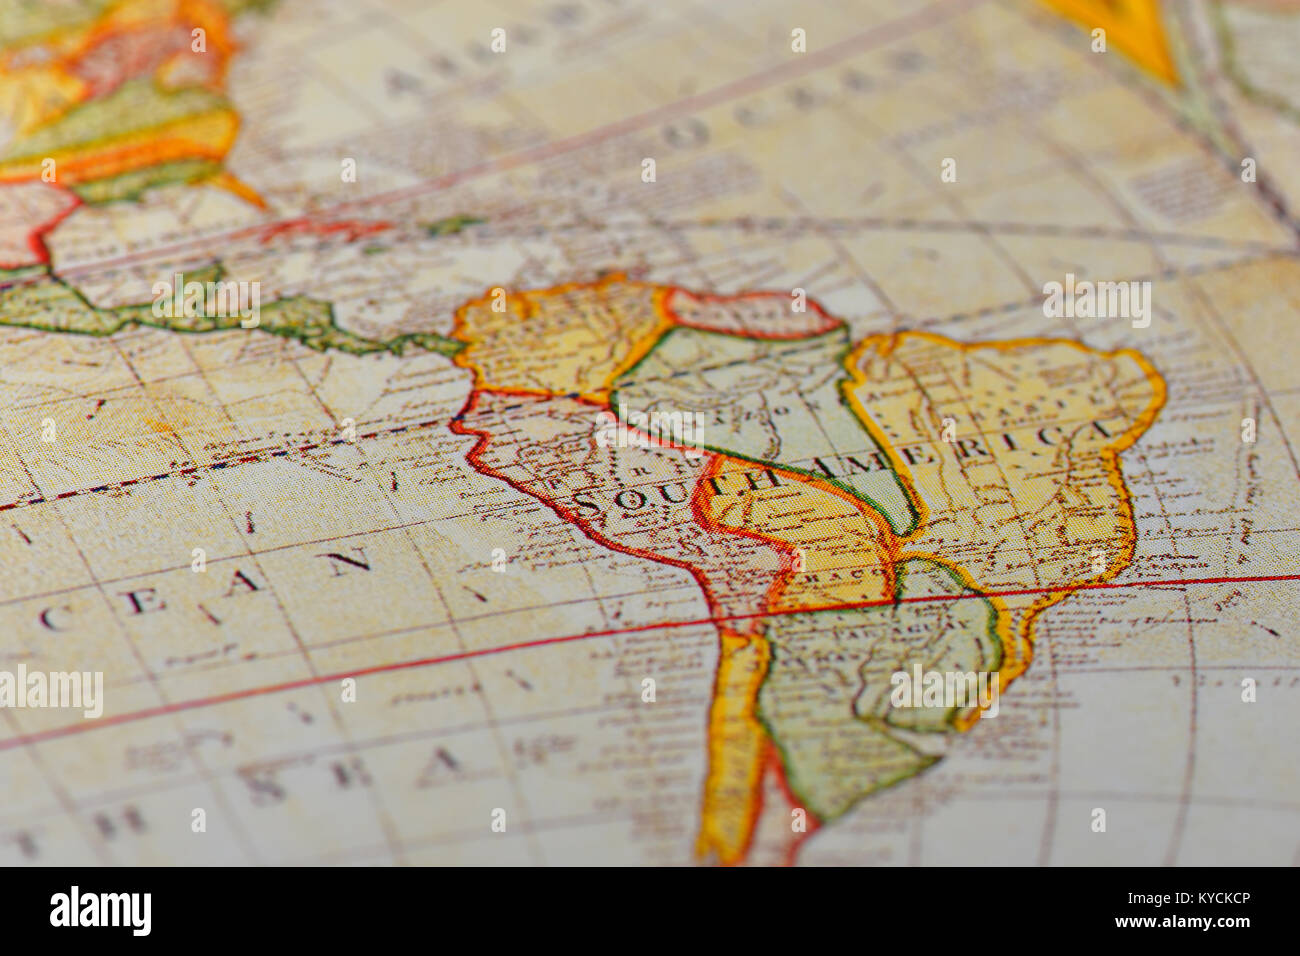 A World Map With Longitude And Latitude Lines.World Map Longitude Latitude Lines Stock Photos World Map